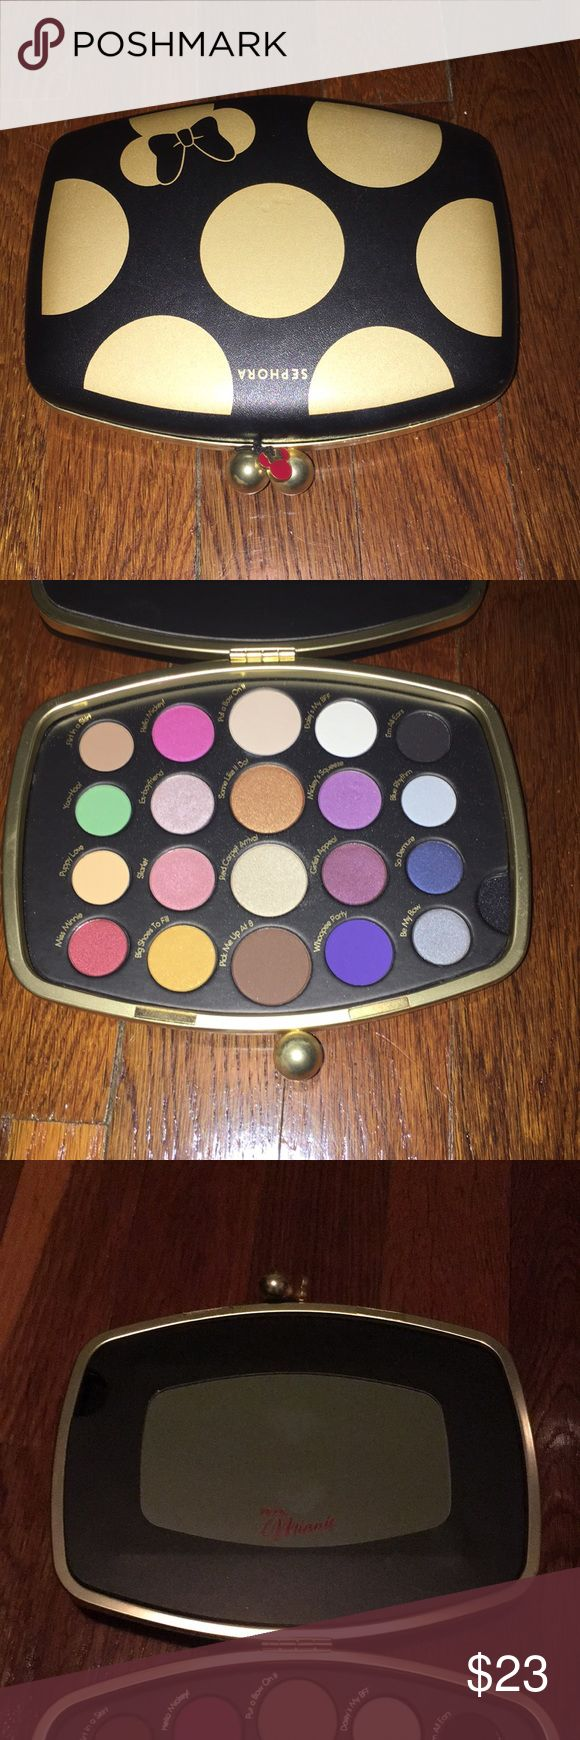 Sephora Minnie Mouse eyeshadow palette Minnie Mouse collection by Sephora eyeshadow palette. Never used. Sephora Makeup Eyeshadow